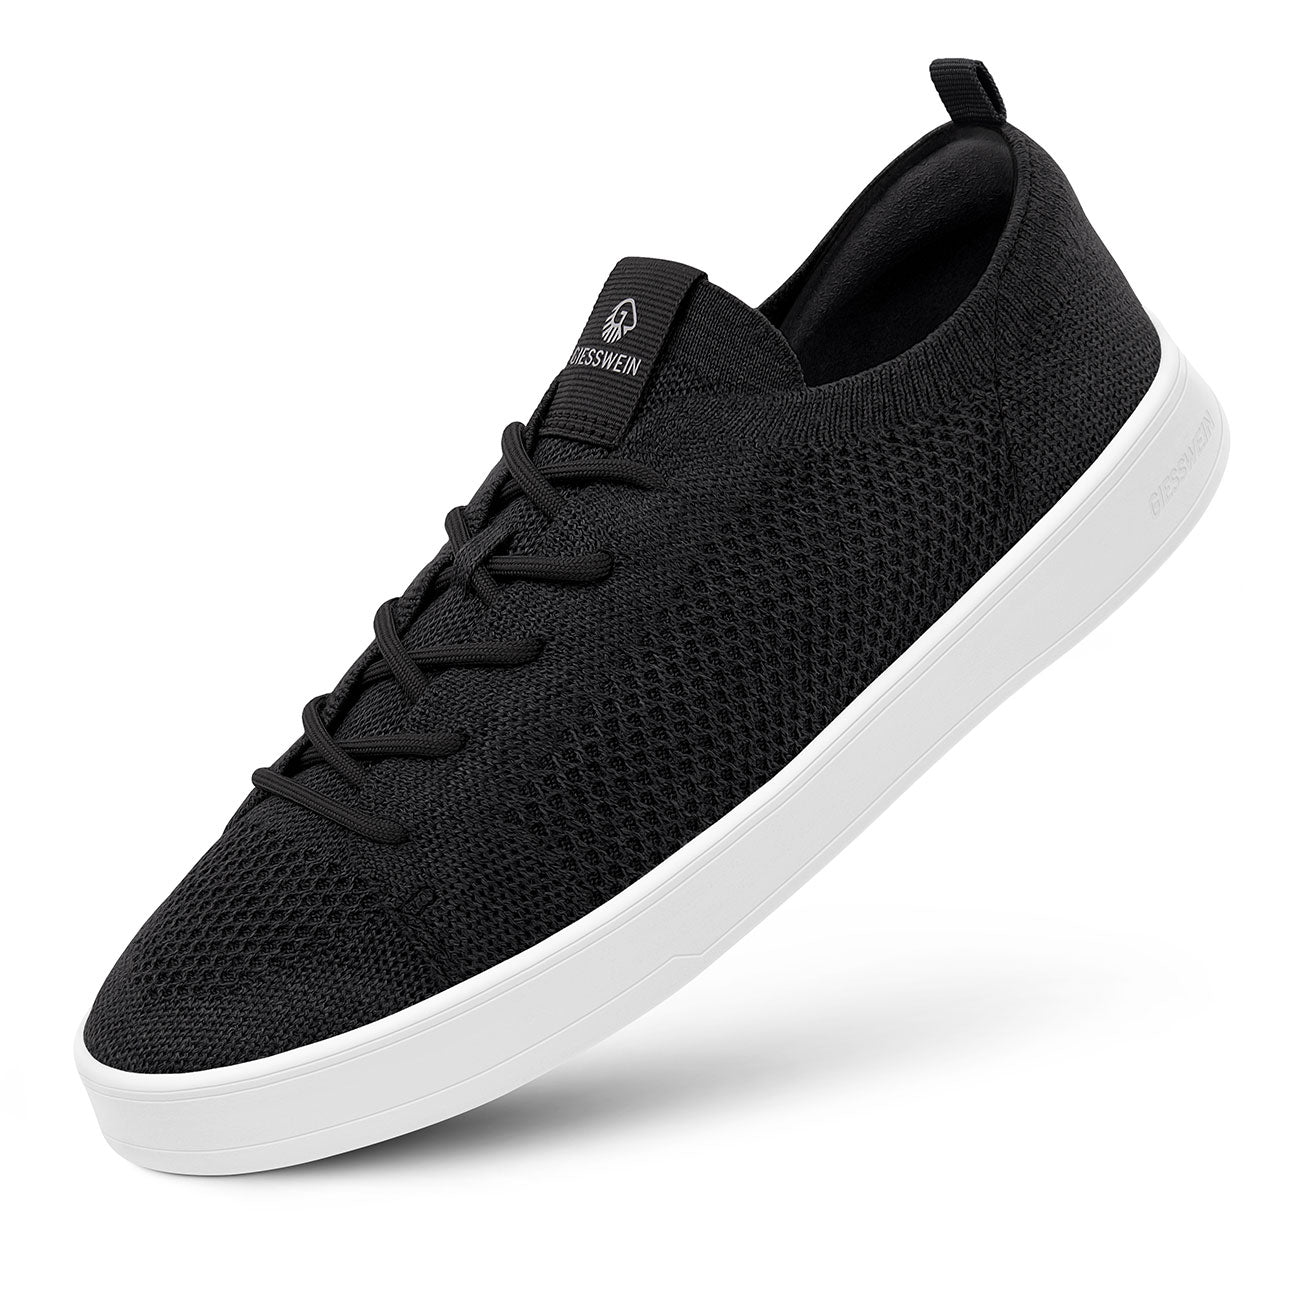 Wool Sneaker Men - Official Page from